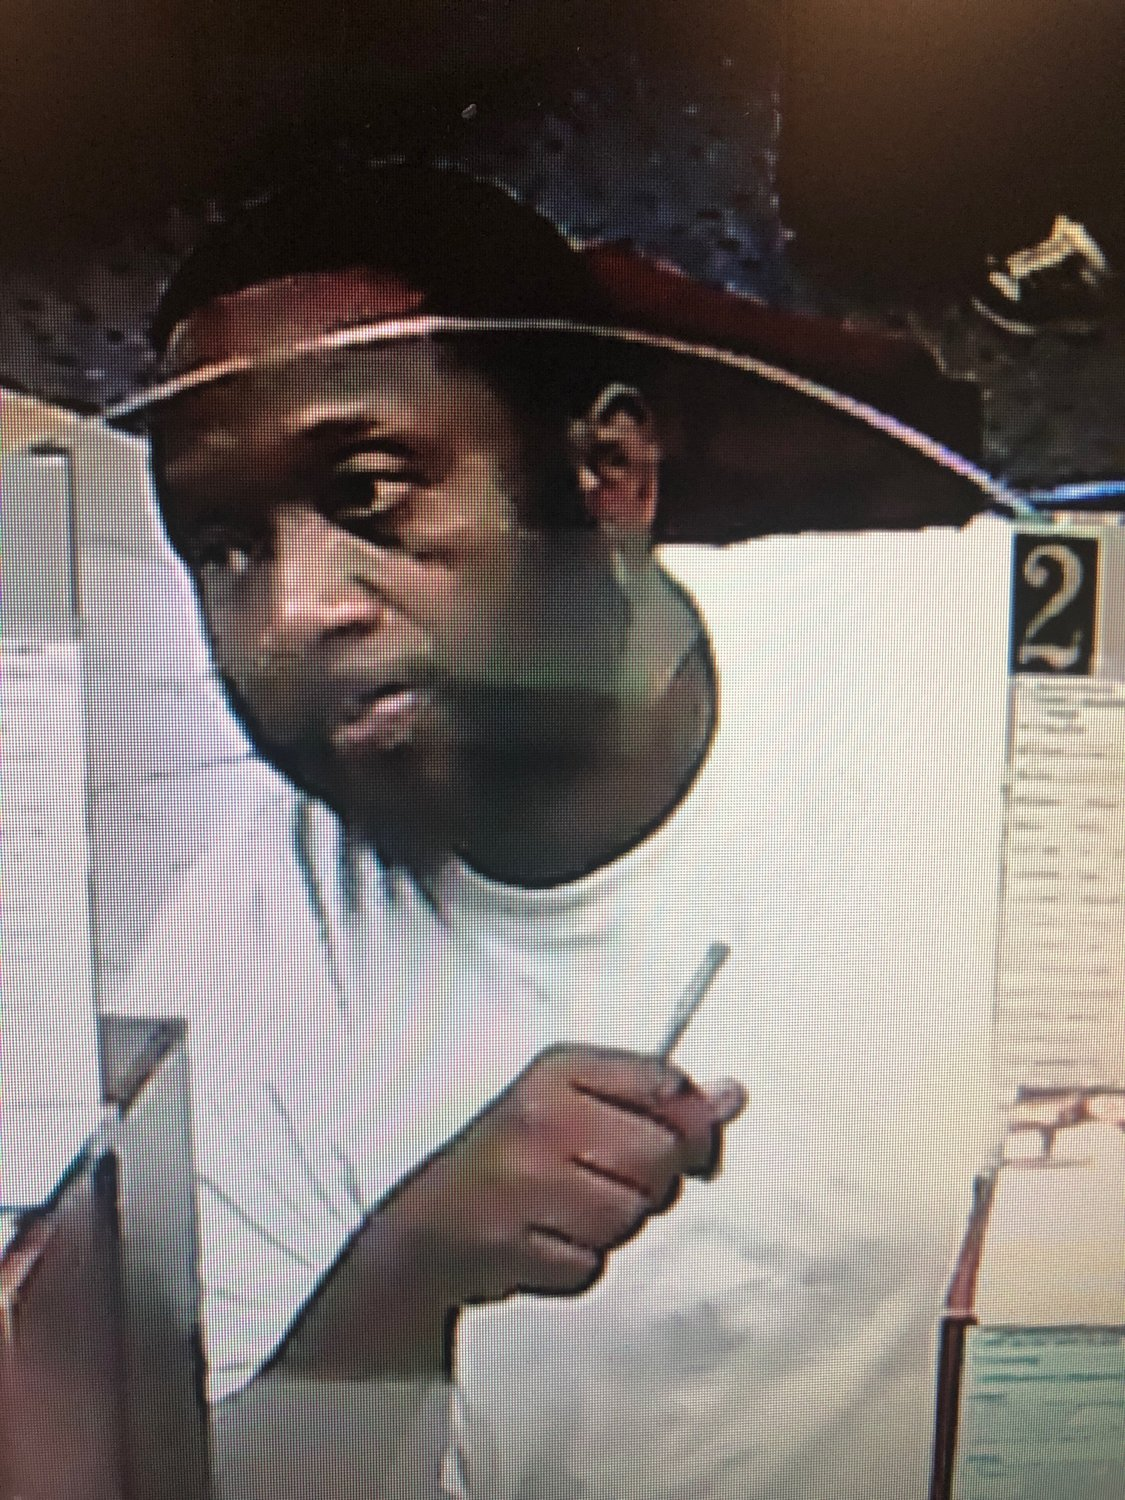 Sumter police think this man robbed the SAFE Federal Credit Union Friday morning before fleeing with an undermined amount of money. If anyone sees him or his vehicle, call 911.